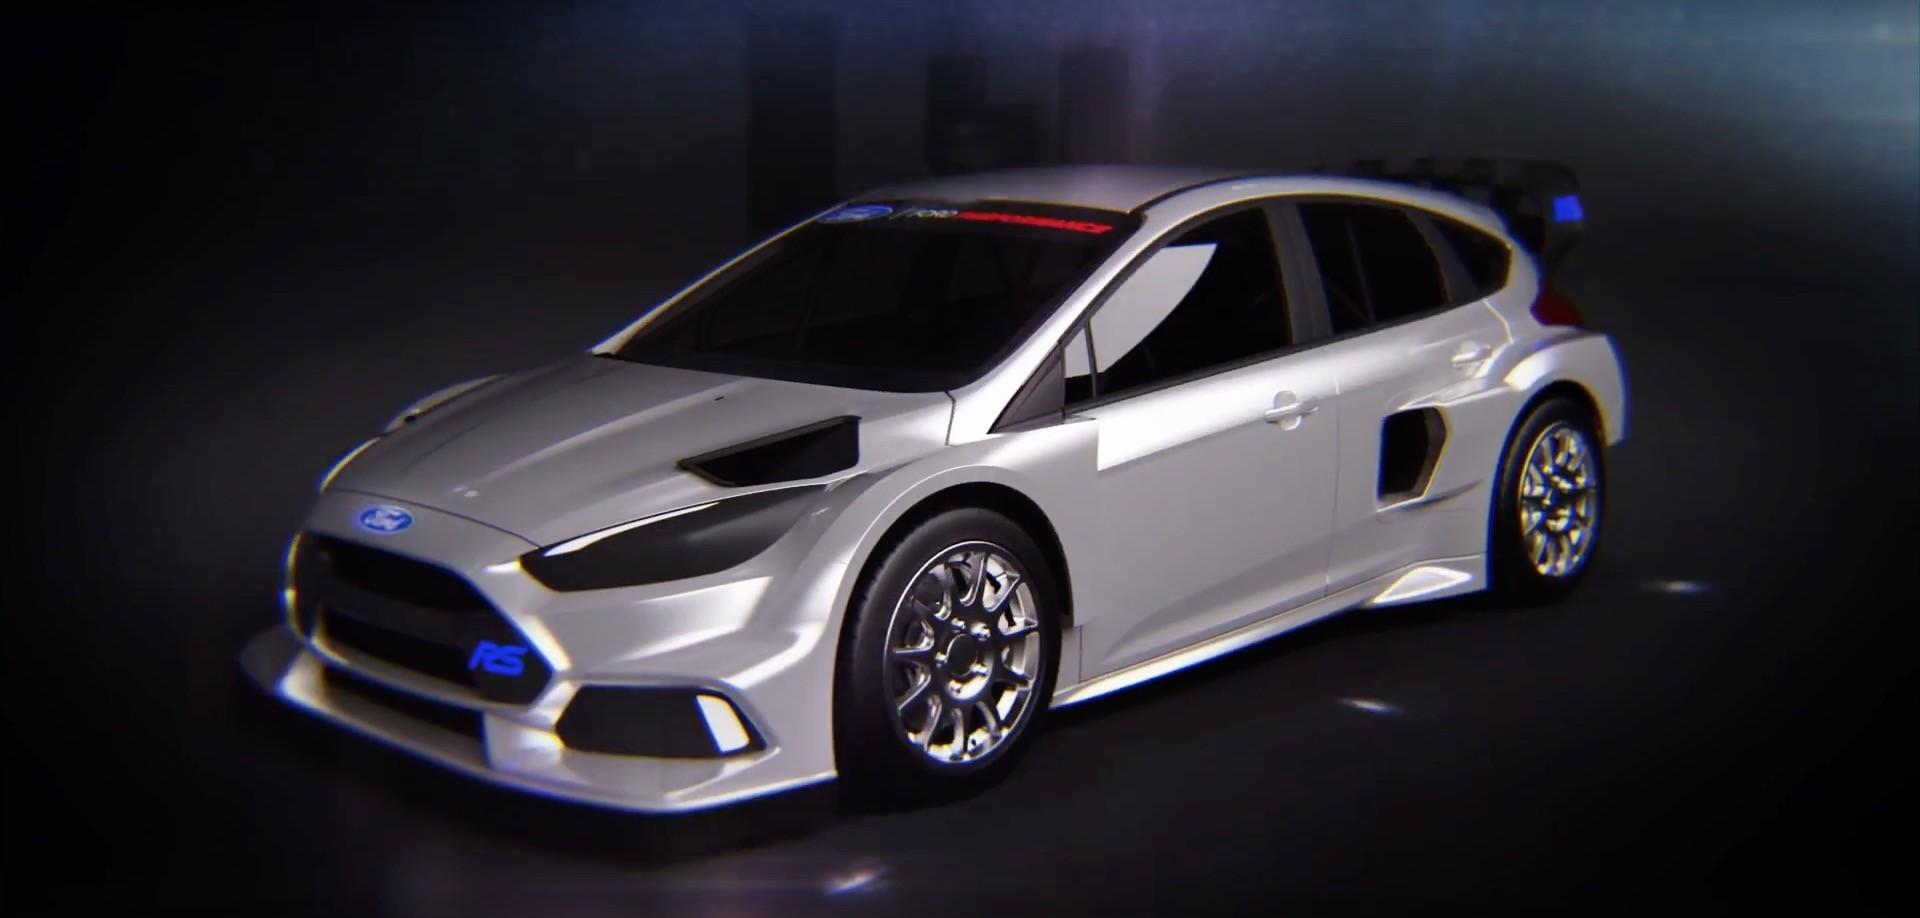 2016 ford focus rs rallycross car confirmed  here are the ford focus rs horsepower 2016 2016 ford focus rs specs youtube